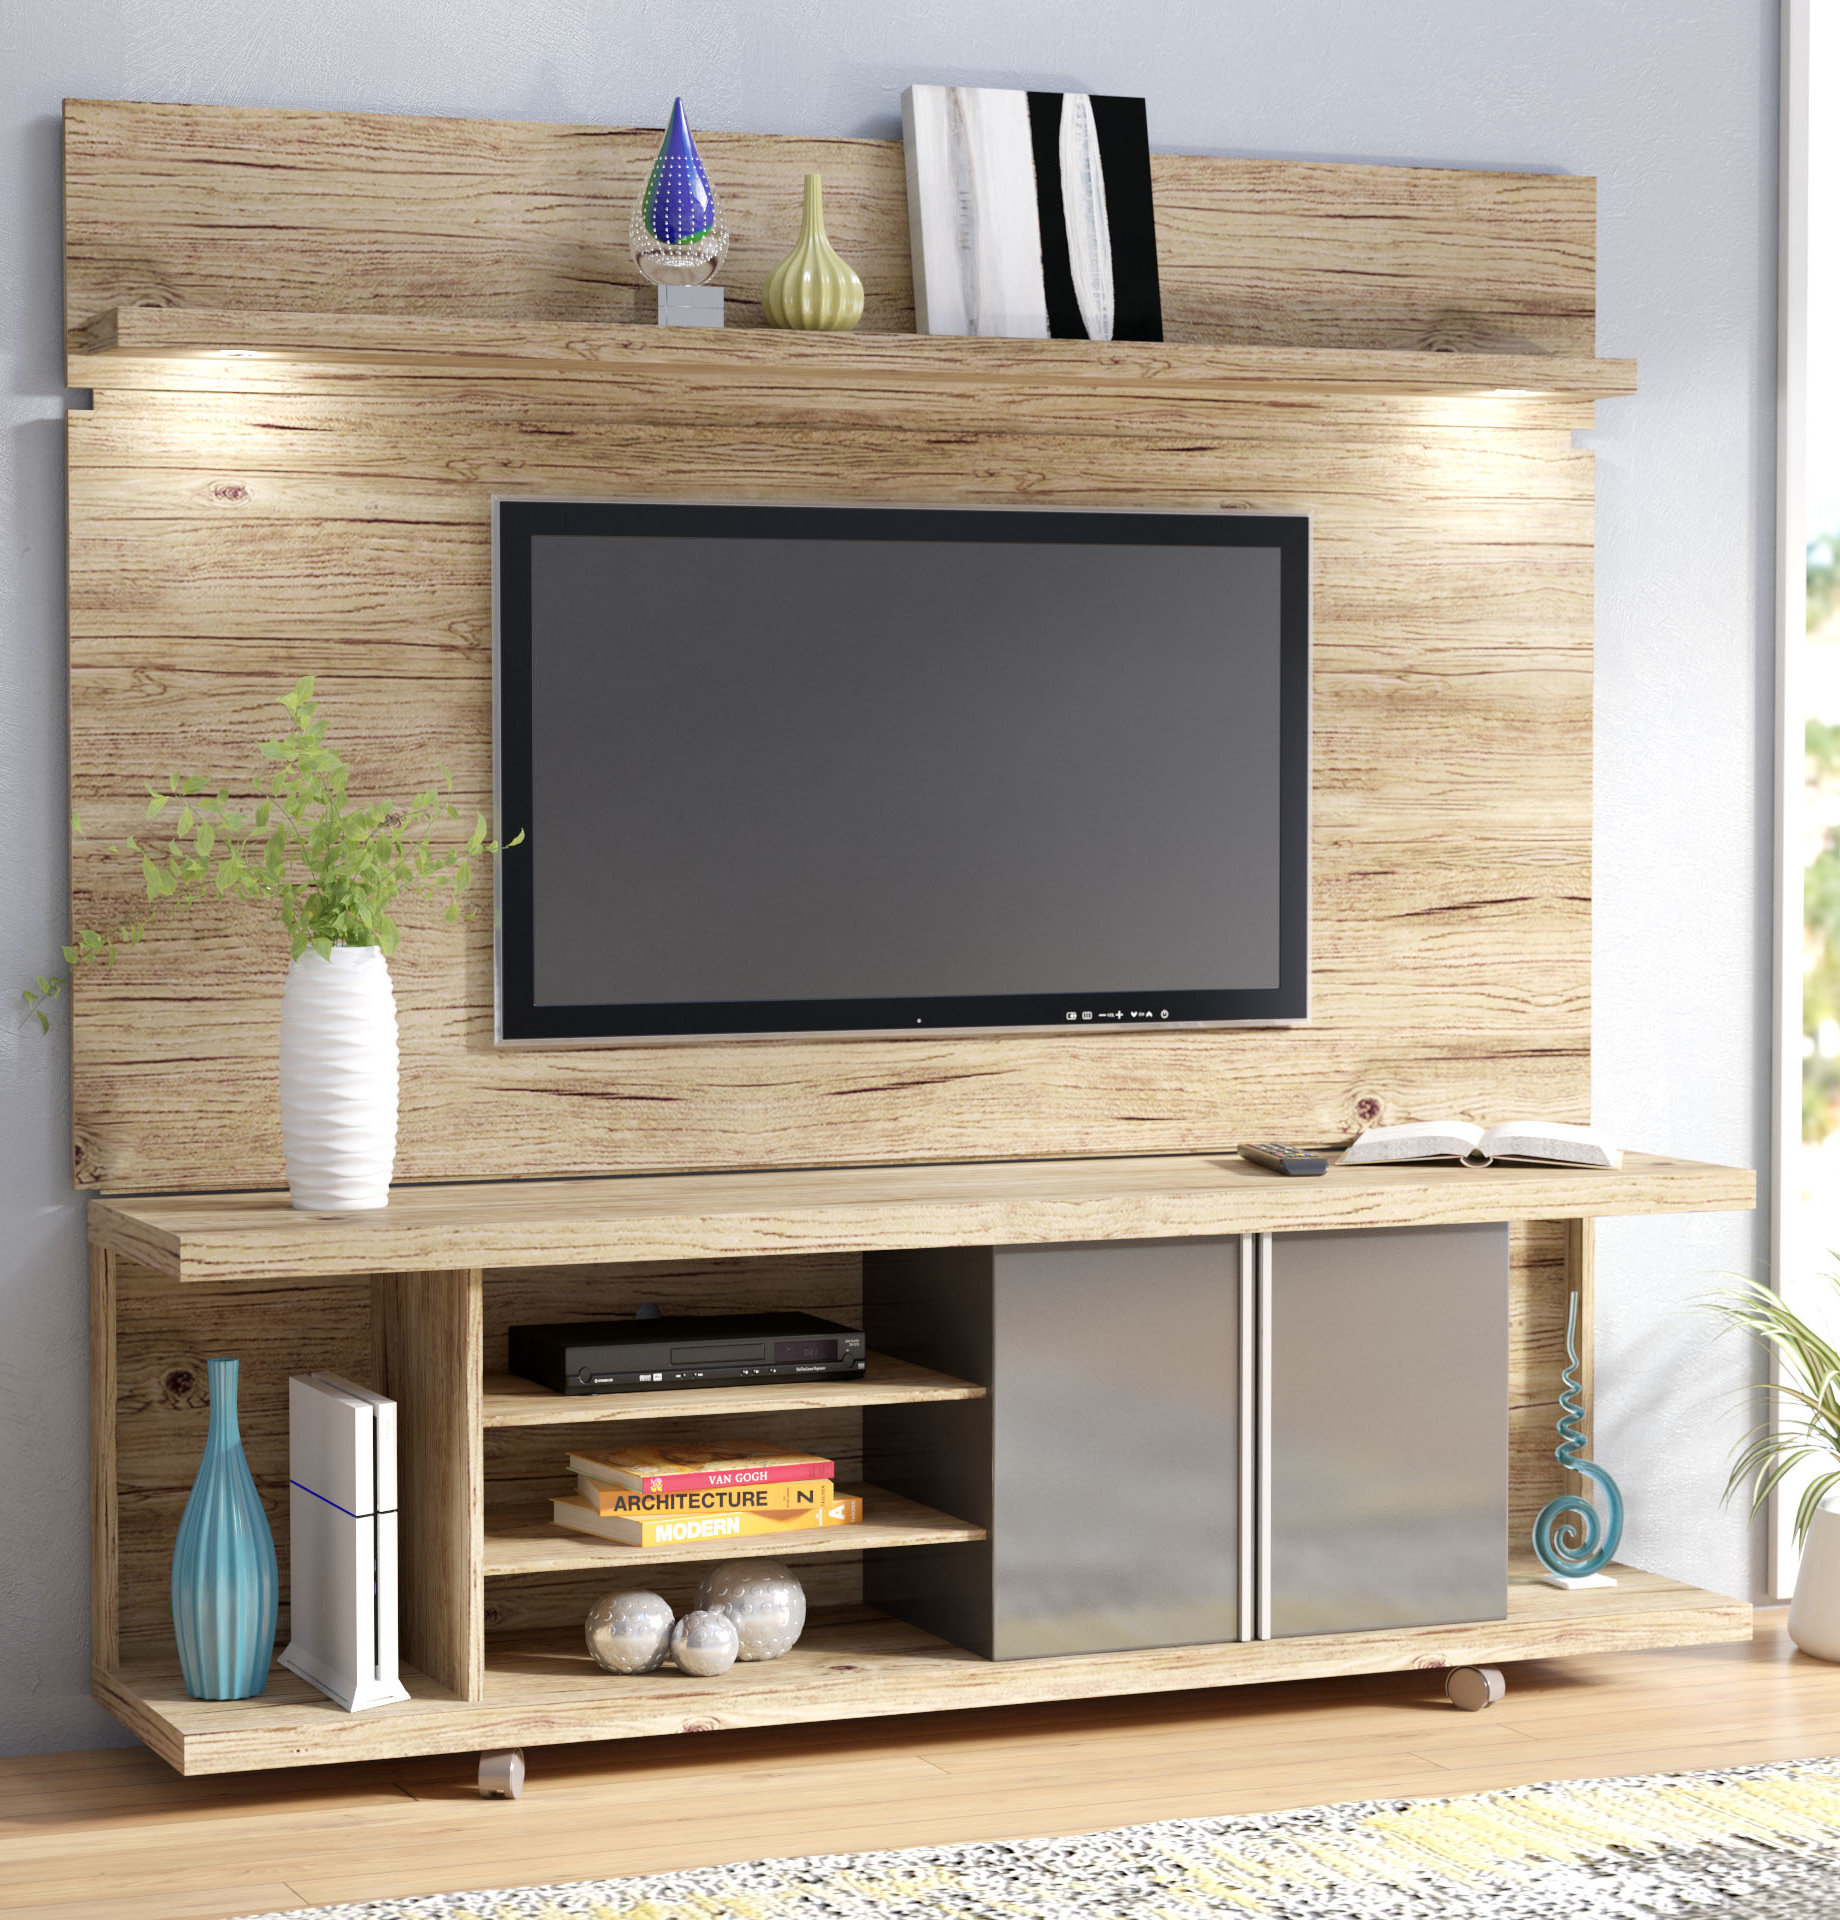 wade logan lucca entertainment center for tvs floating shelves system bathroom countertop basin hafele brackets shoe storage and organization rack kit laying sticky back floor